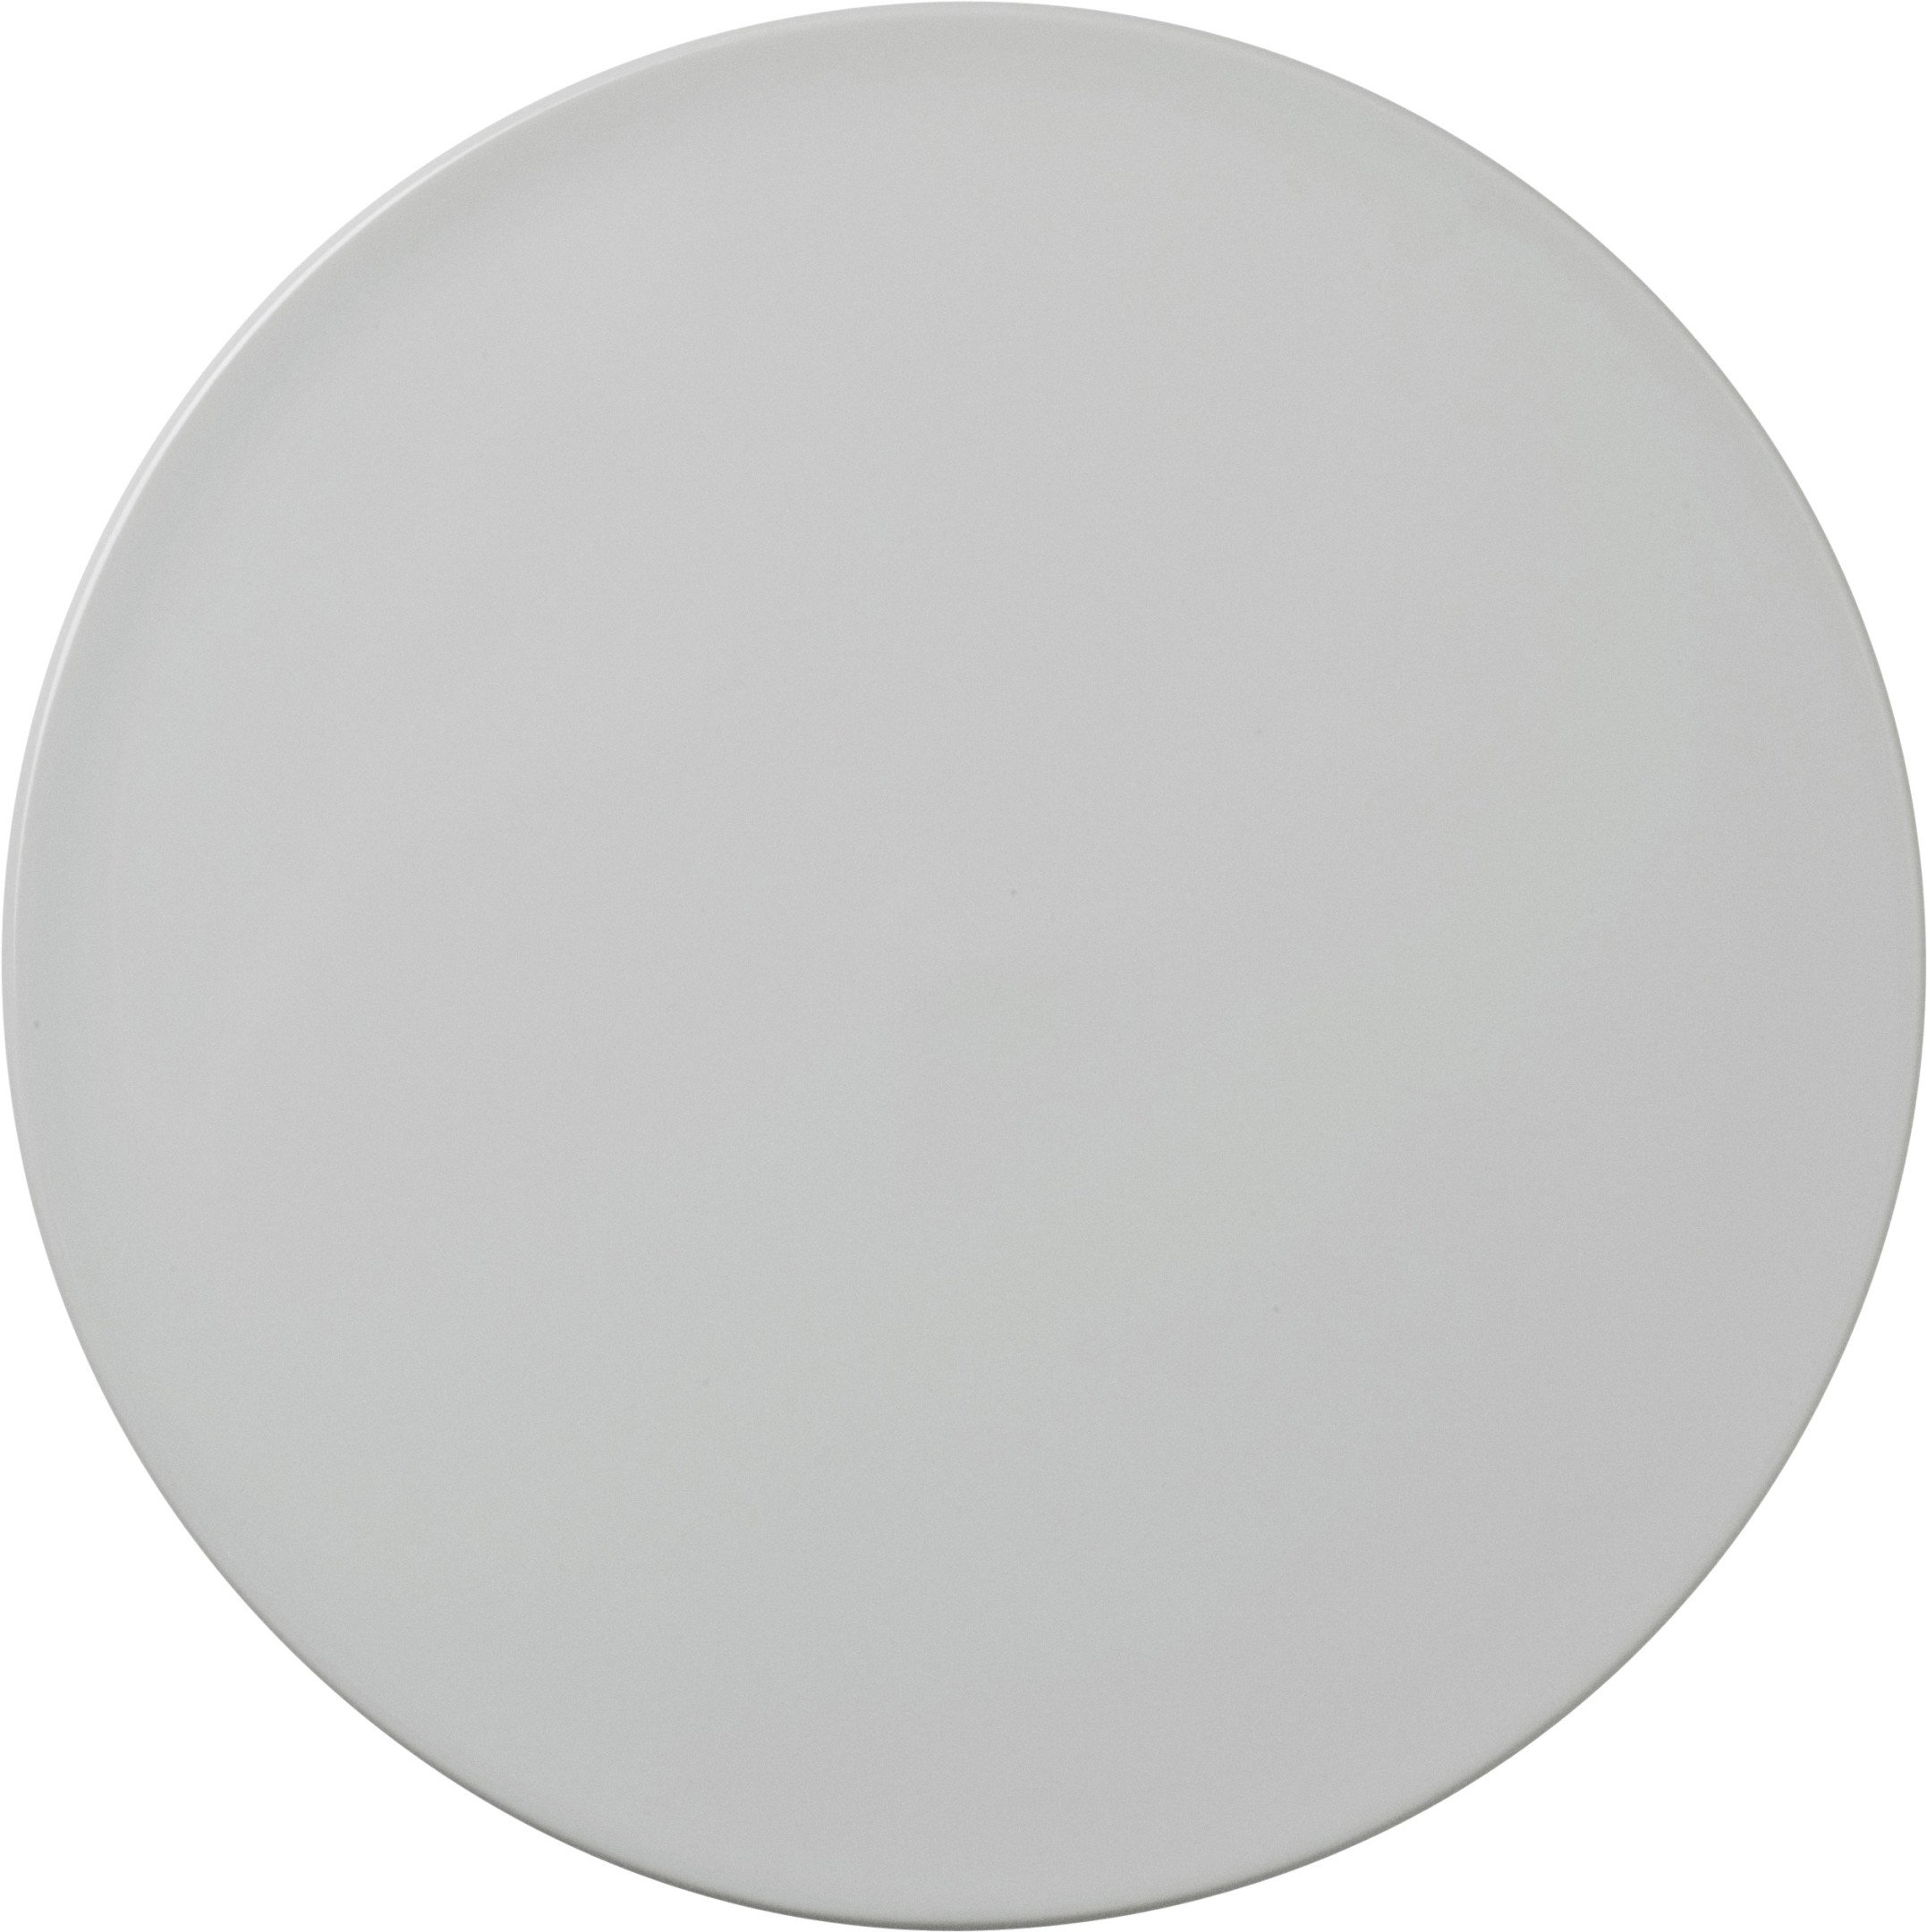 New Norm Plate/Lid Smoke Ø 21,5cm by Norm Architects for Menu